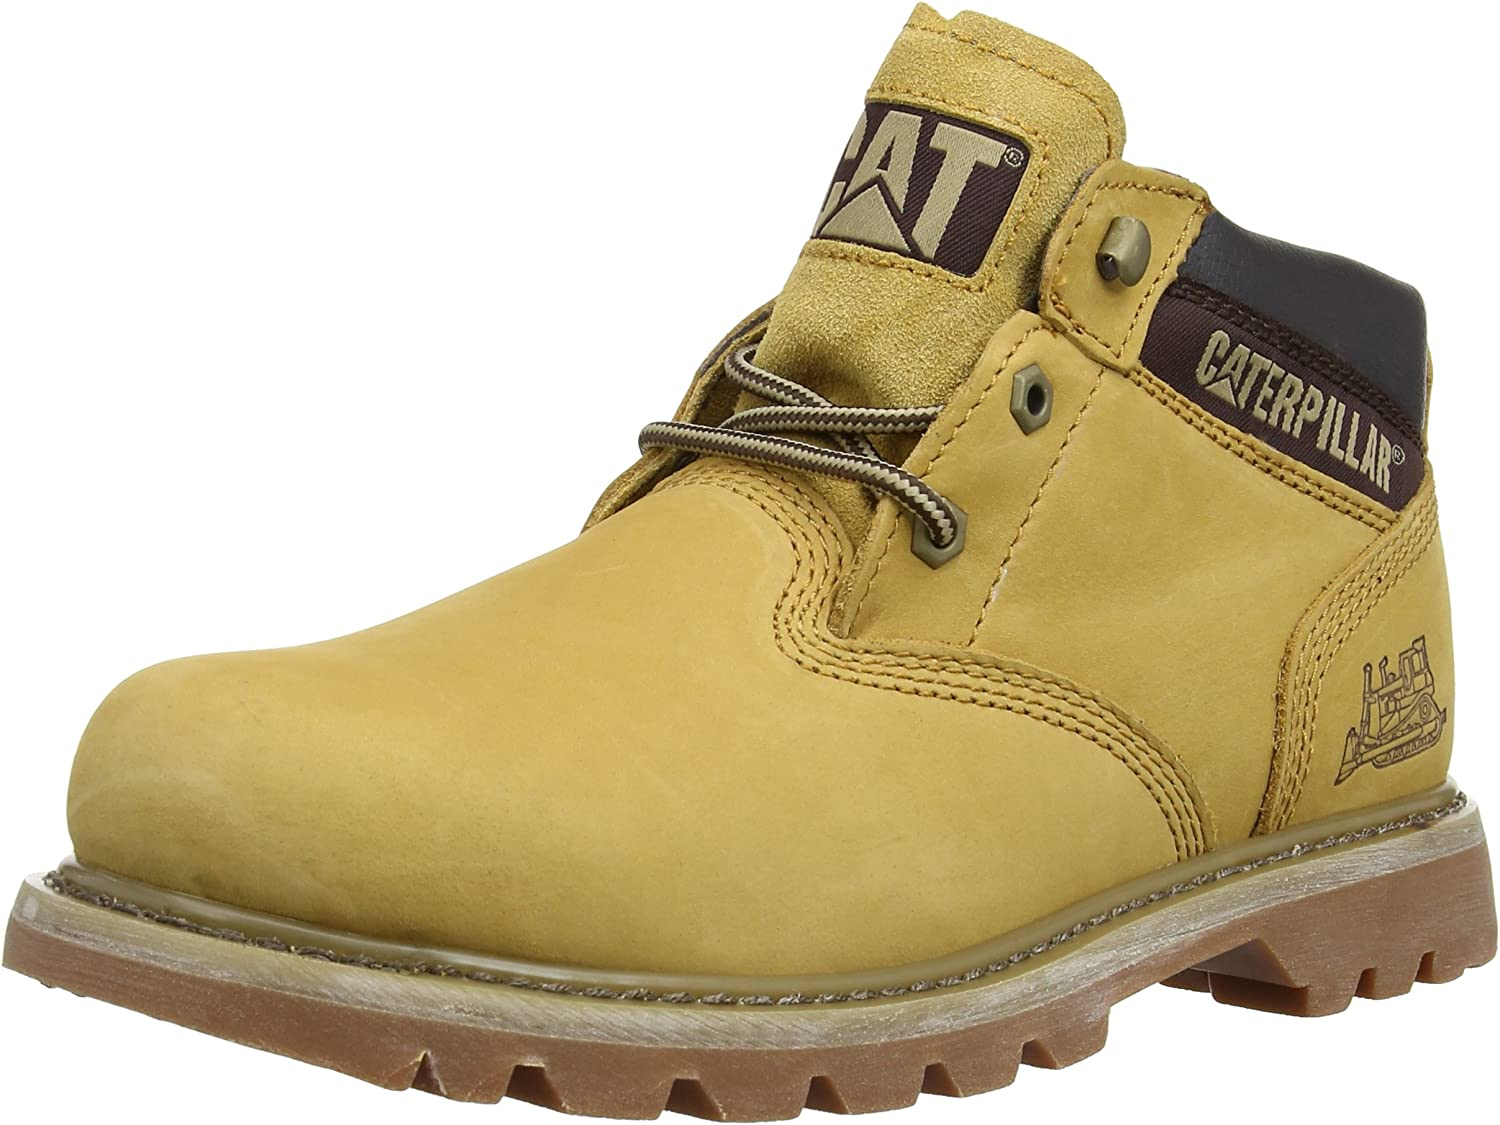 Caterpillar Ealing Mid Honey Mens Ankle Boots, Size 12